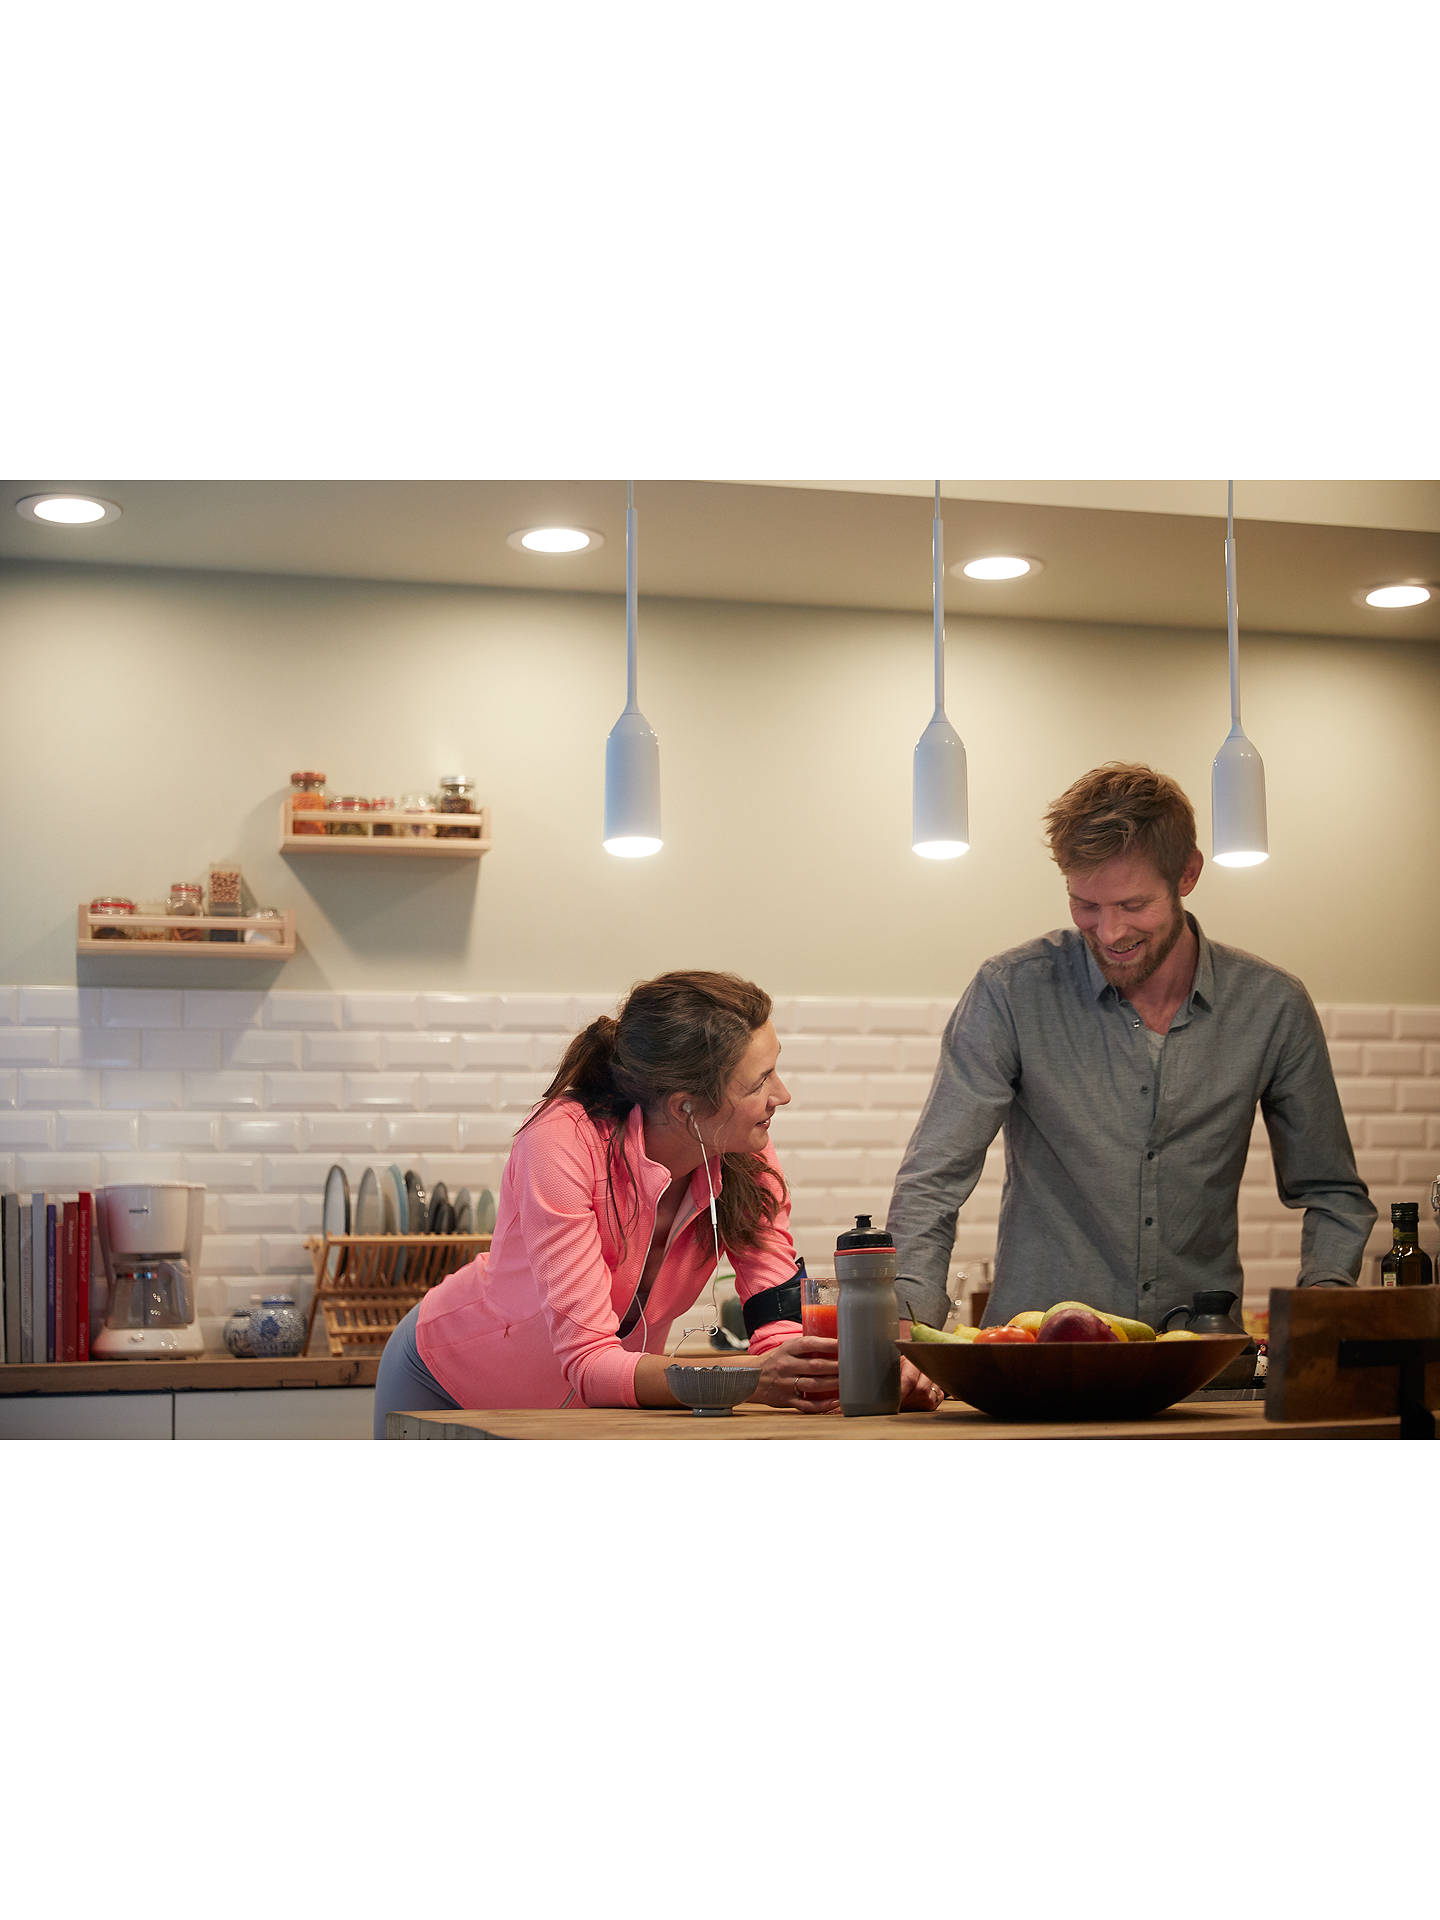 Buy Philips Hue White Ambiance Devote Ceiling Light and Dimmer, White Online at johnlewis.com